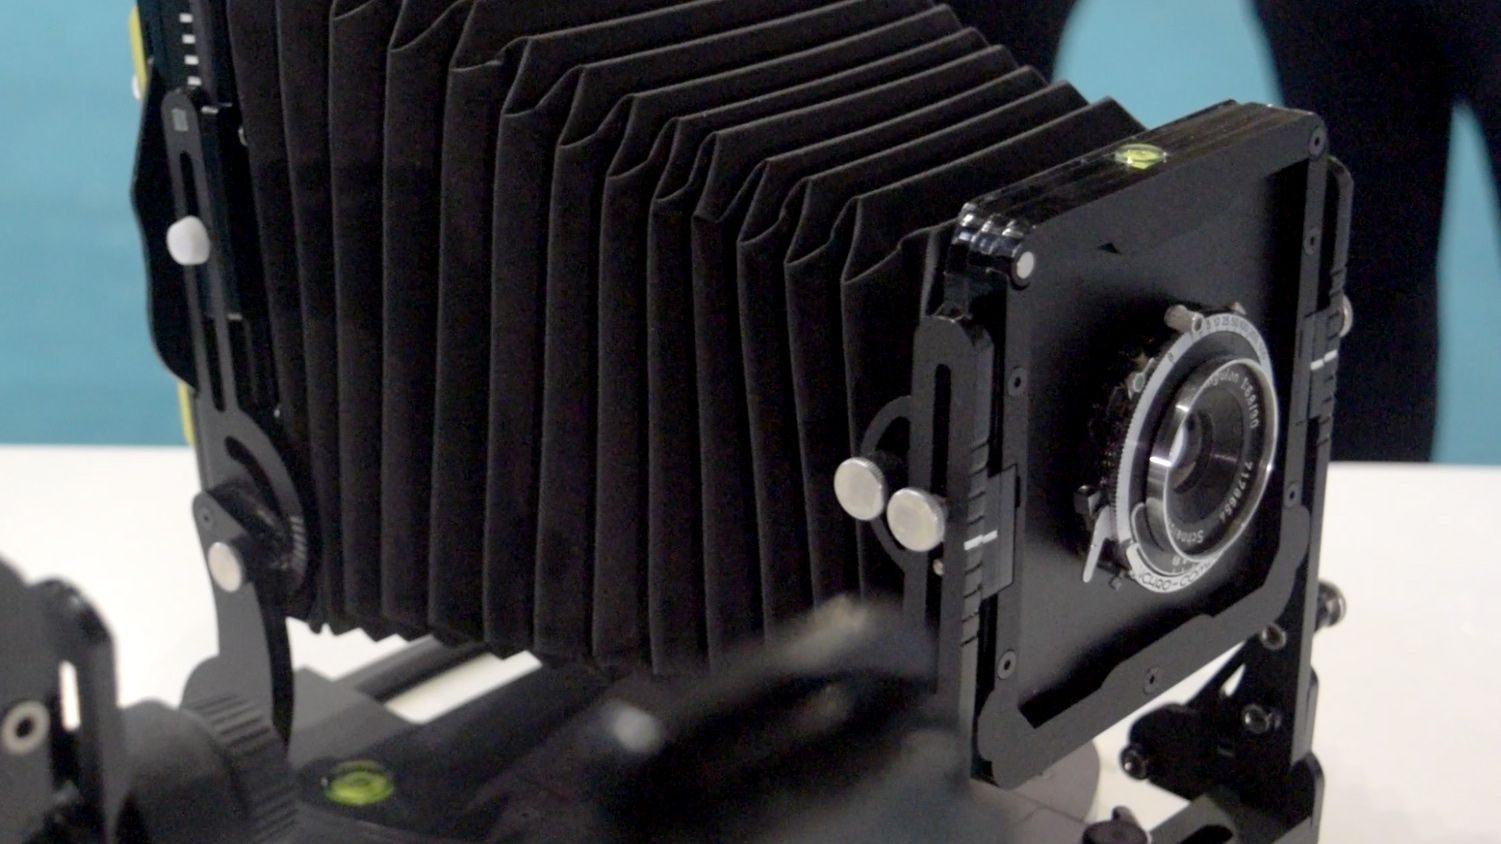 Diyp takes a look at the new chroma 4x5 large format